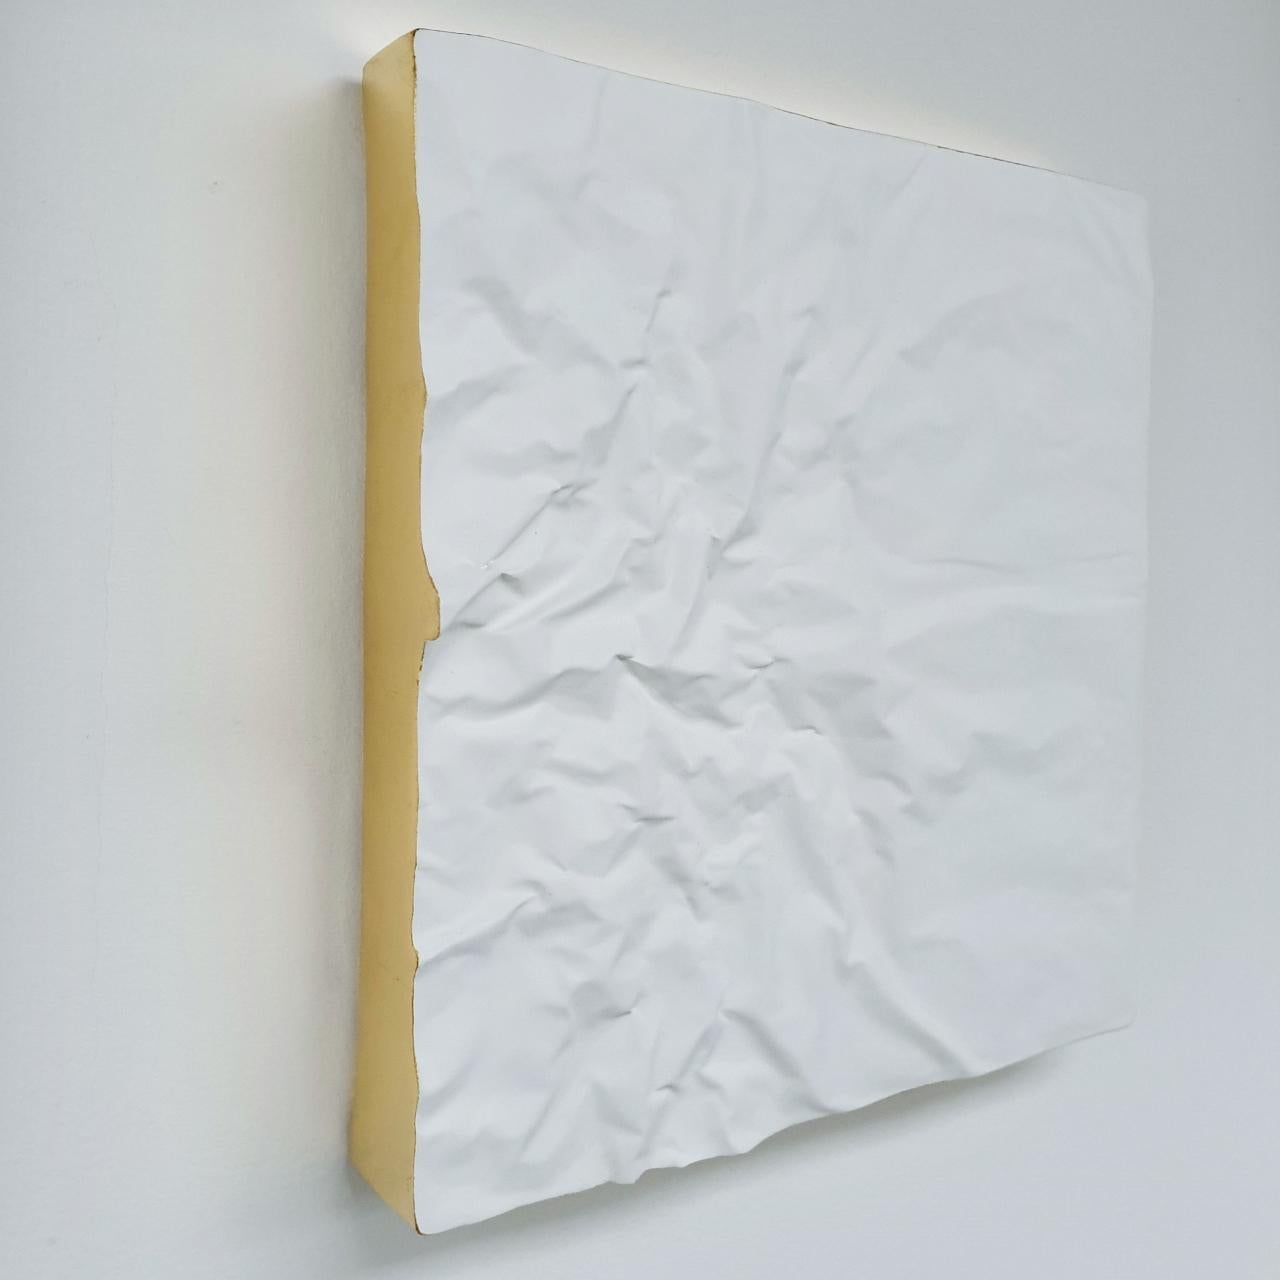 Creased no. 3 - contemporary modern abstract wall sculpture painting object